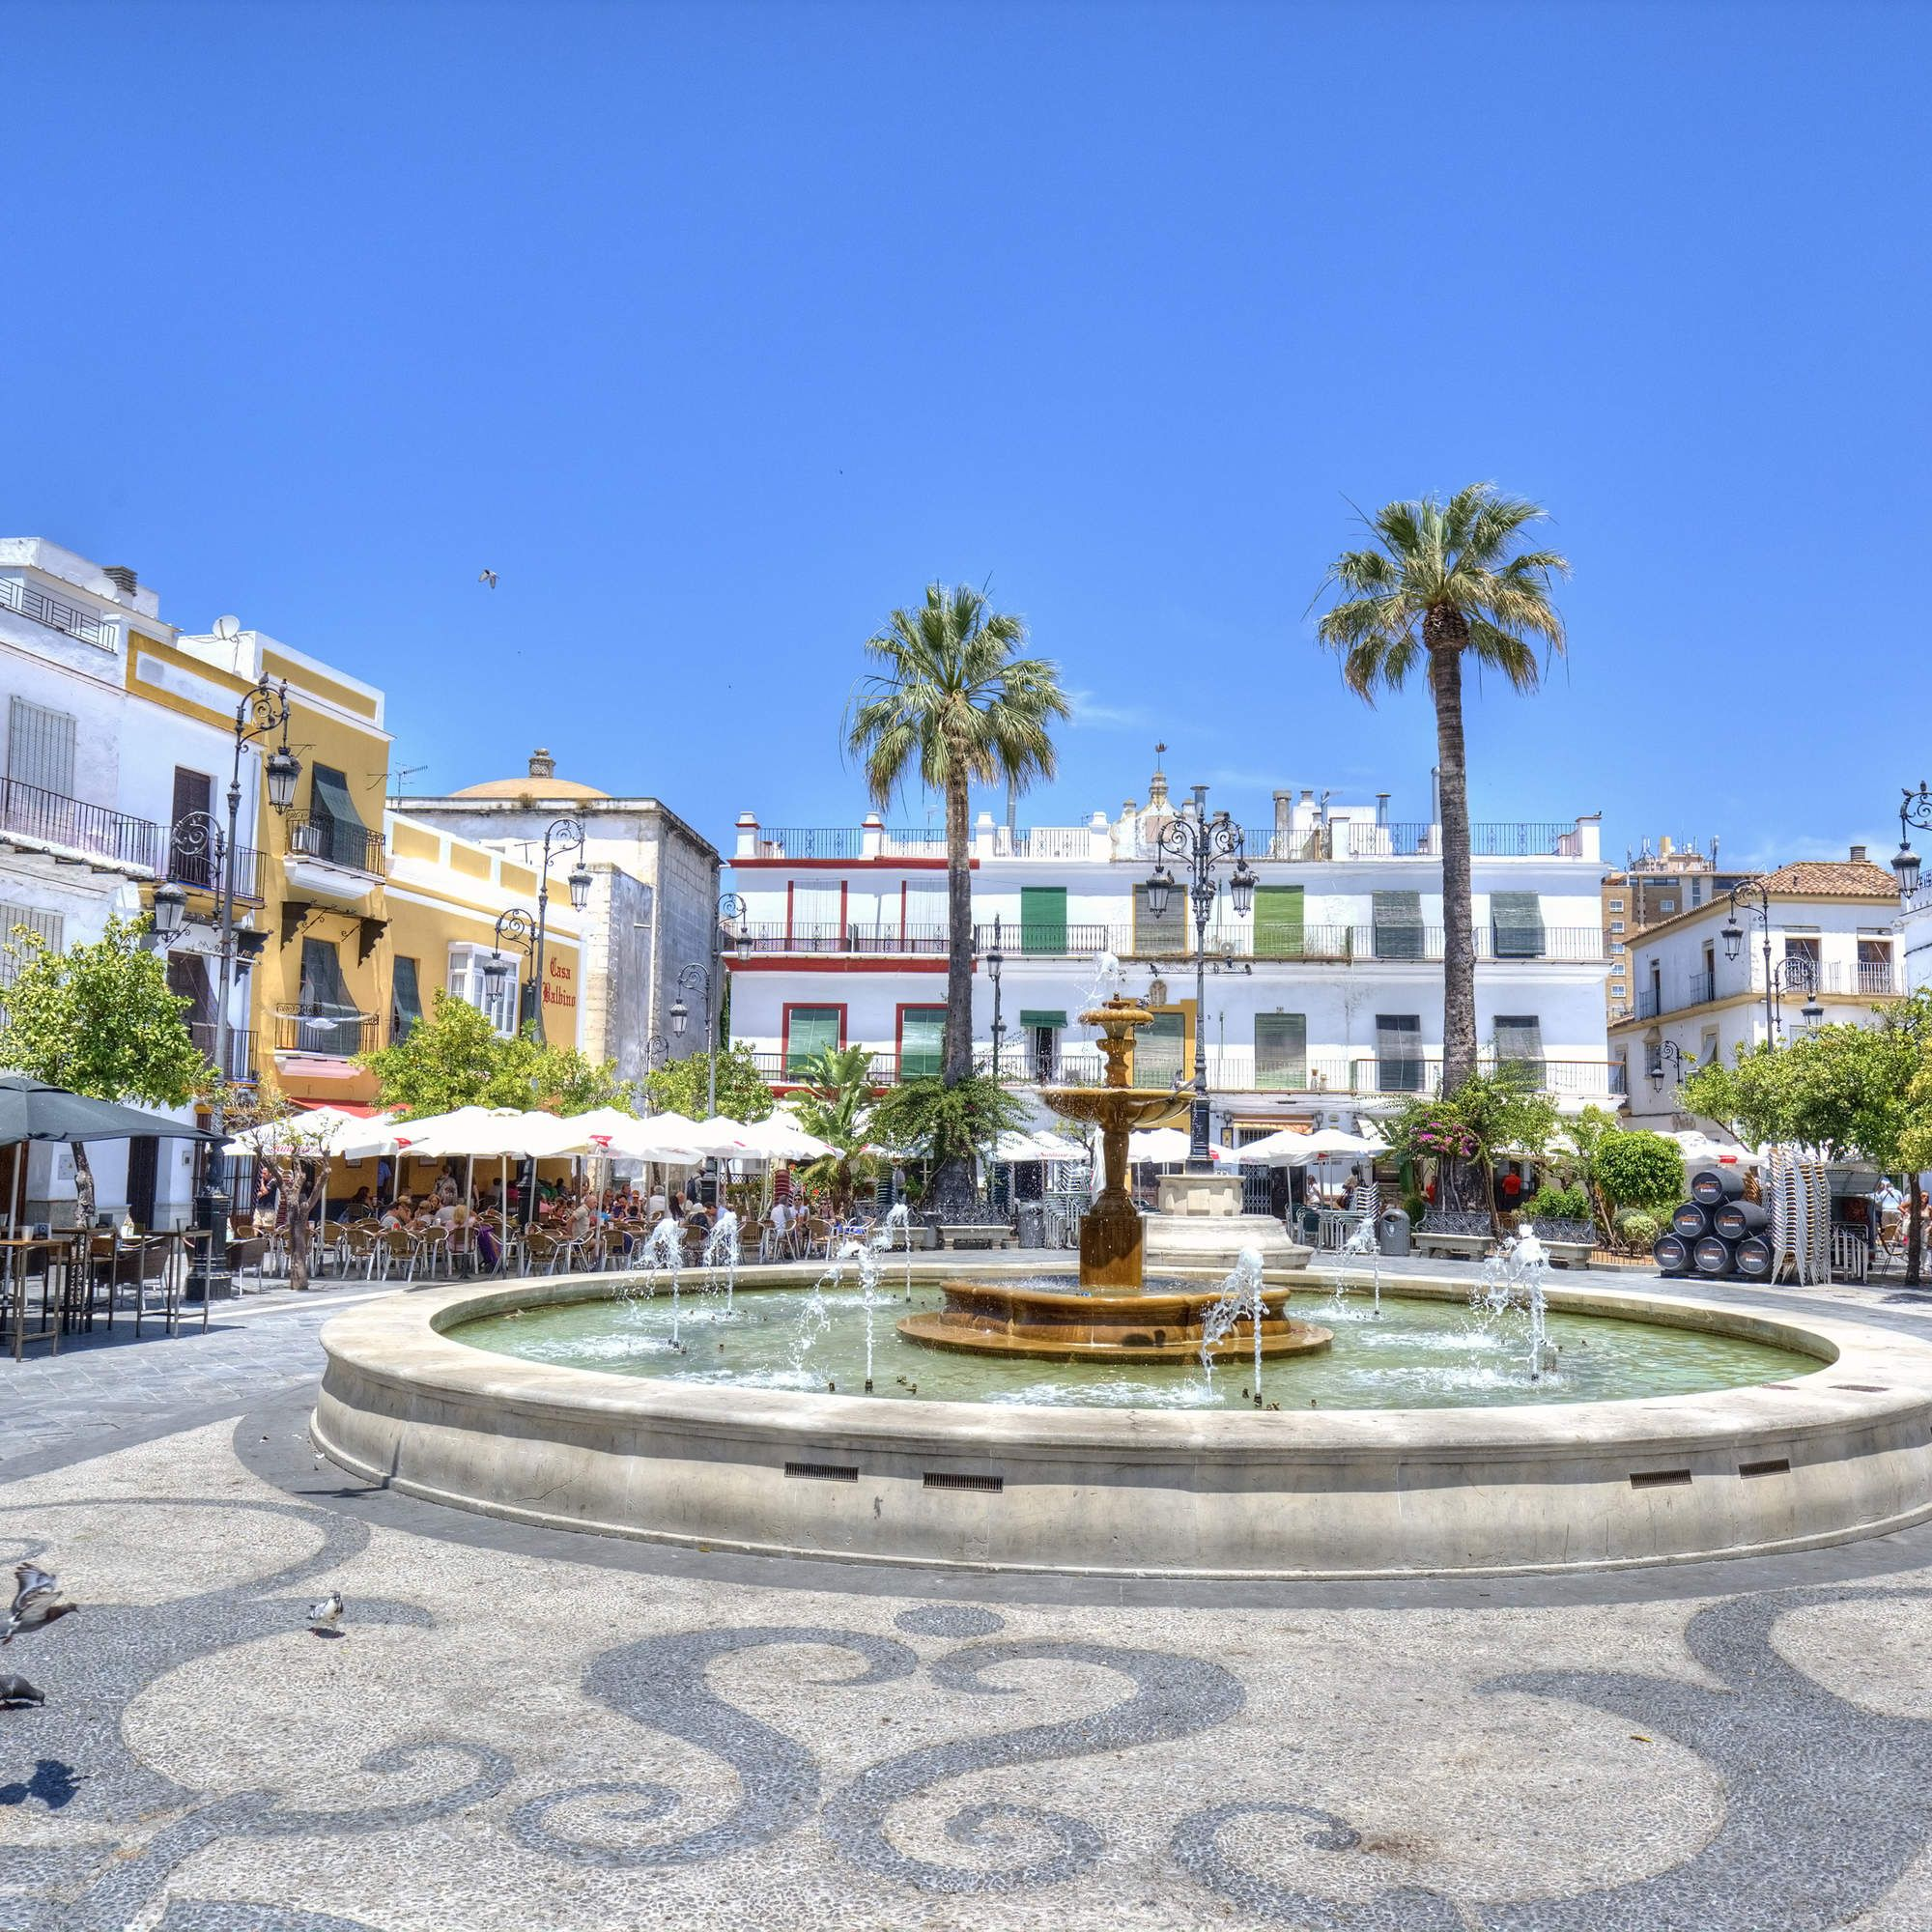 (Sanlúcar de Barrameda, Spain) World's Top 20 Small Towns, According to That Dude Who Visited Every Country